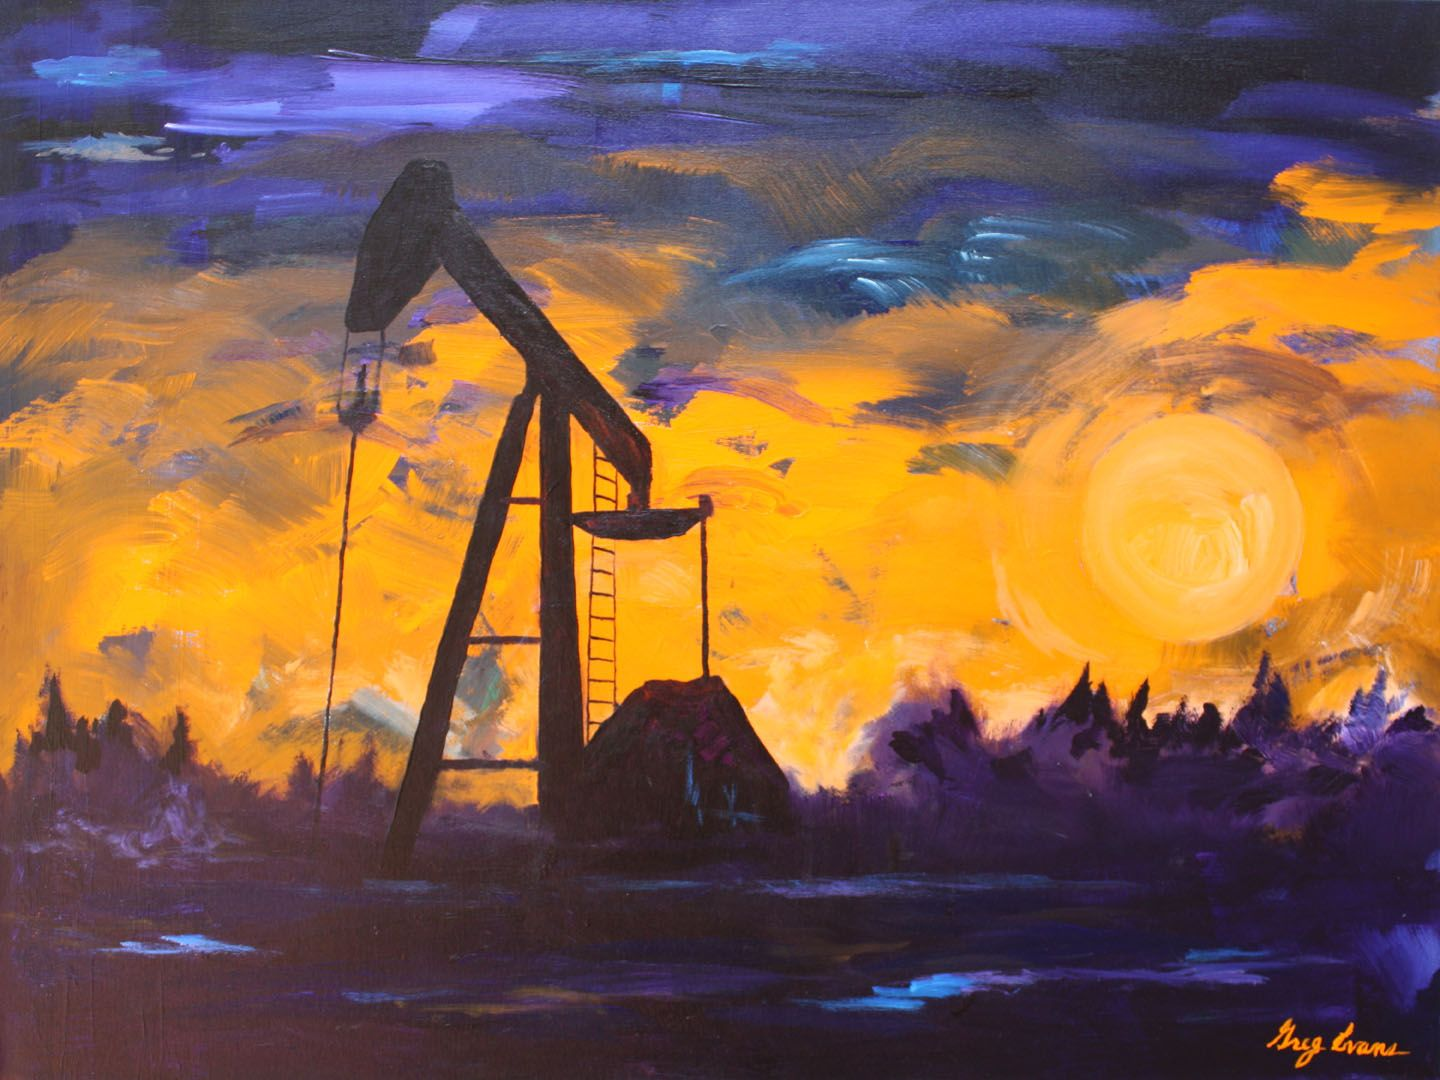 Oil And Gas Art Of Greg Evans Artwork In